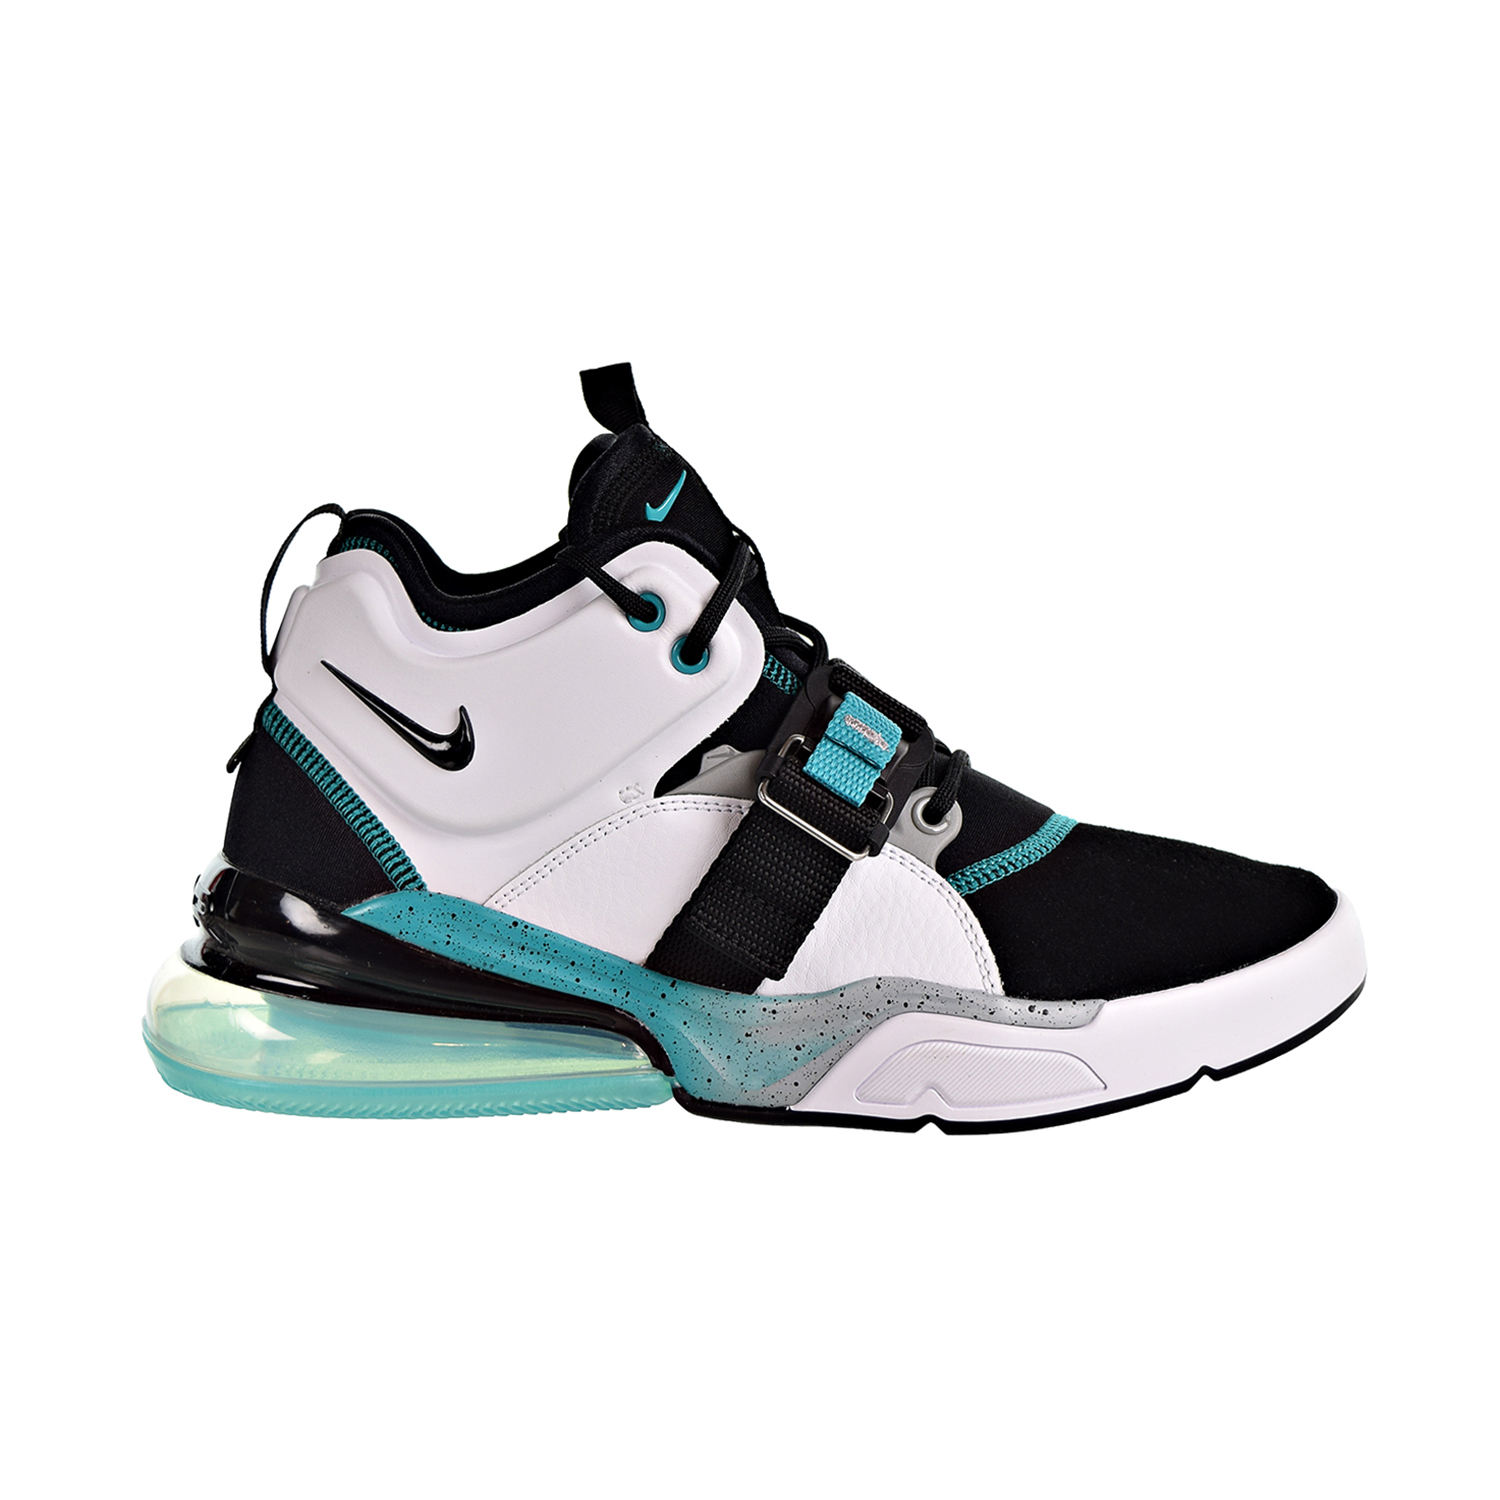 Details about Nike Air Force 270 Big Kids' Shoes White Black Wolf Grey AJ8208 100